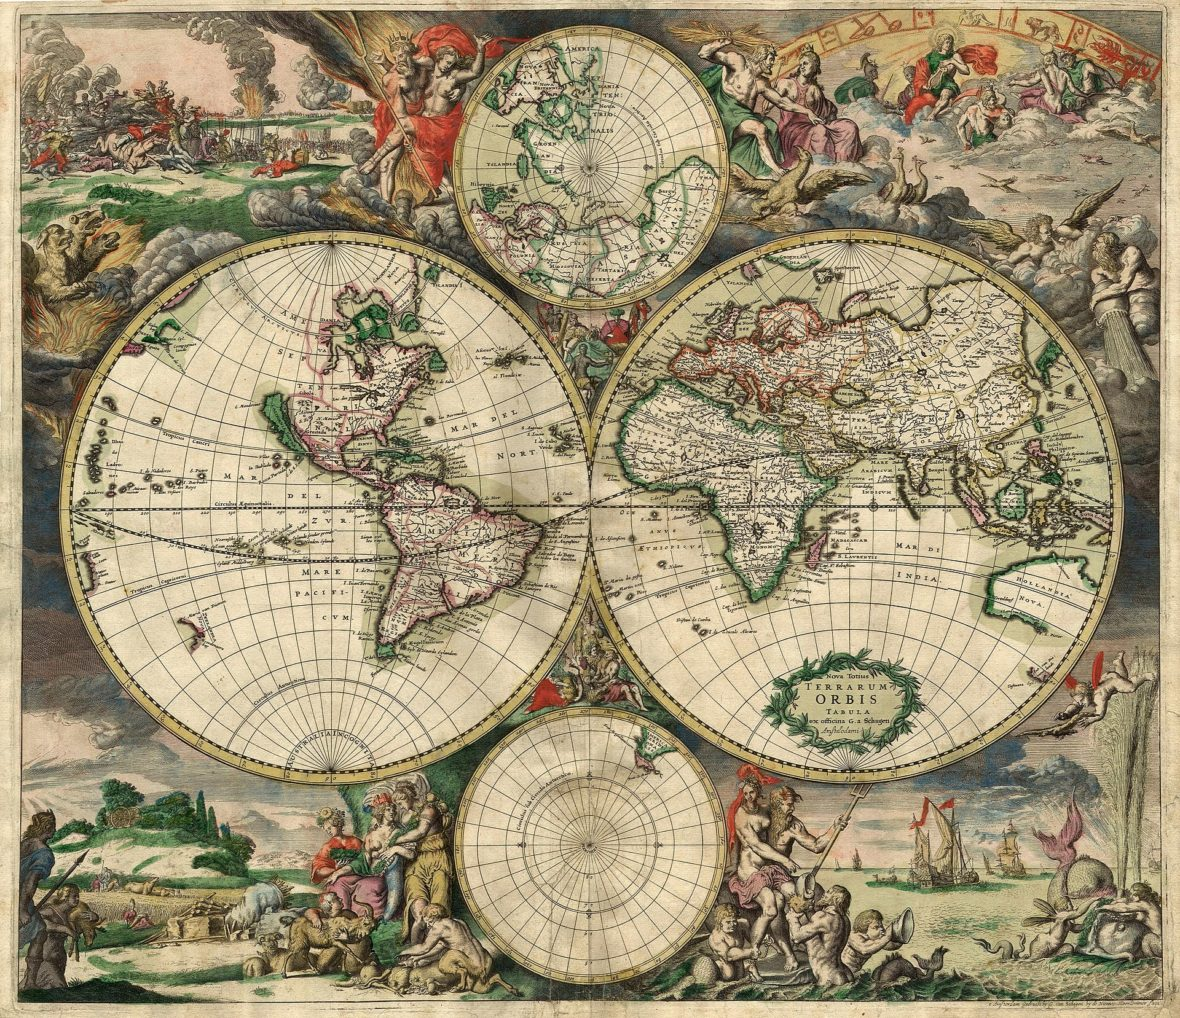 World map by Gerard van Shagen, Amsterdam, 1689